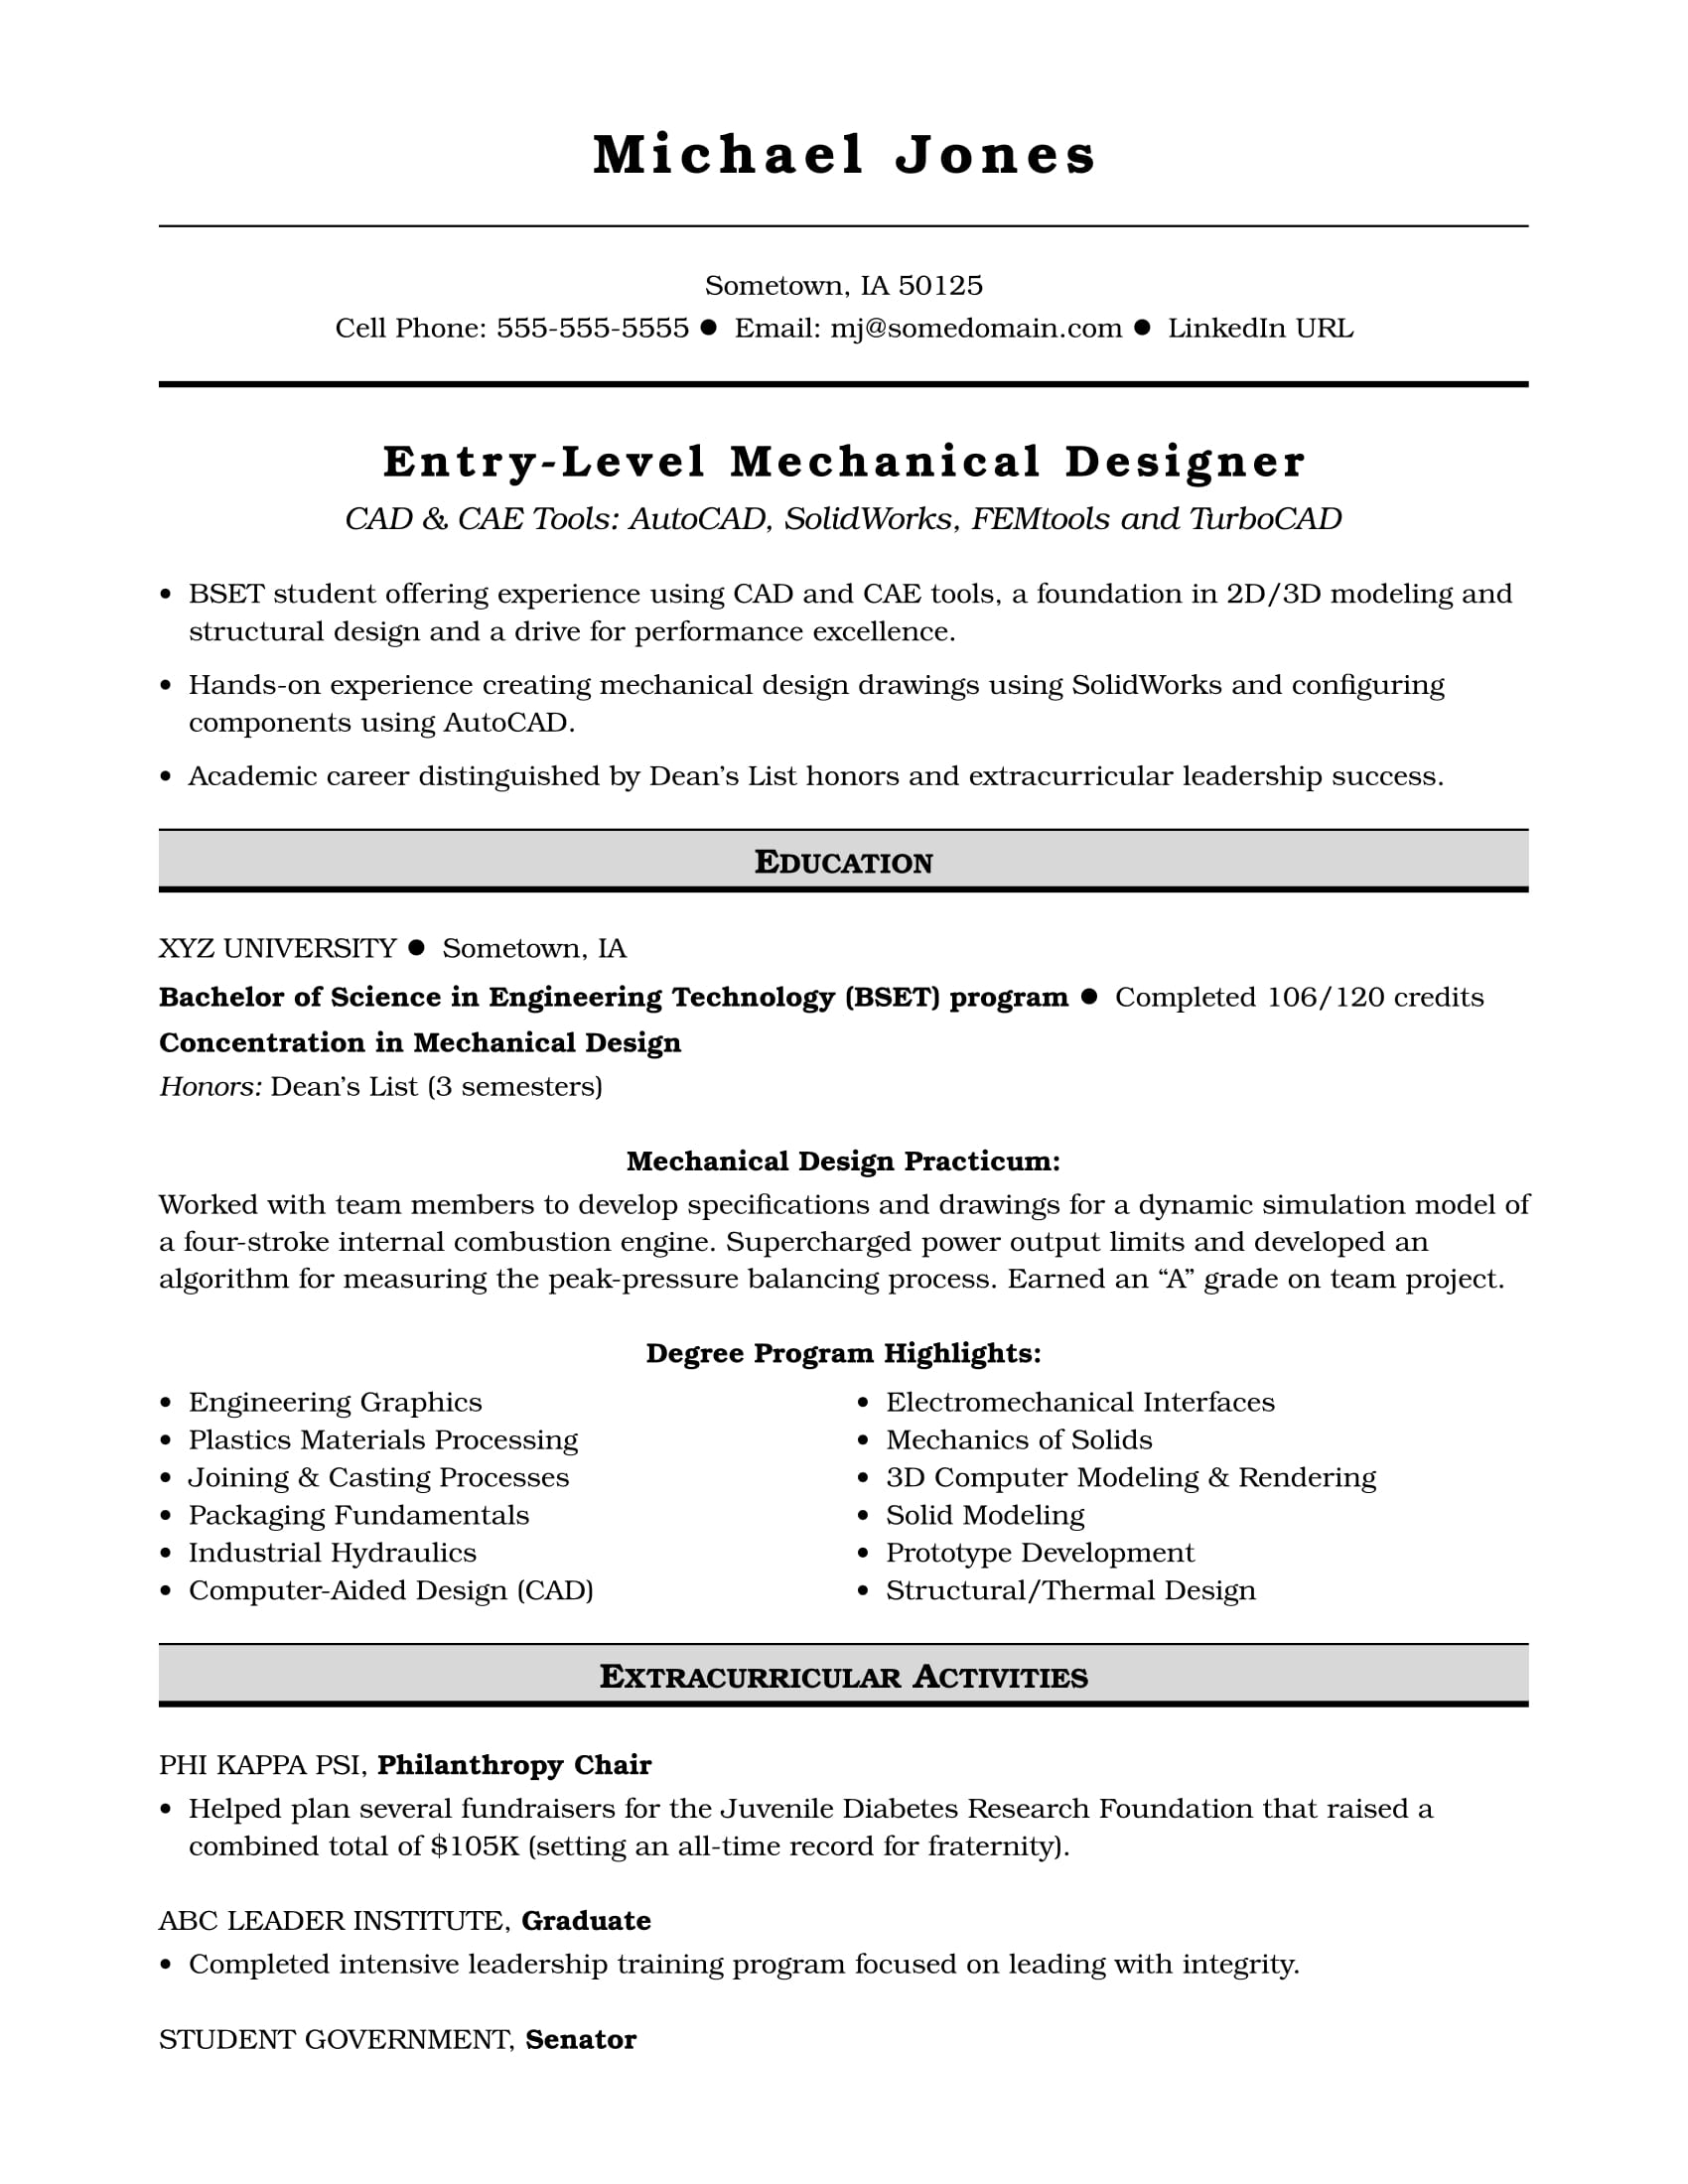 Sample Resume for an Entry-Level Mechanical Designer ...